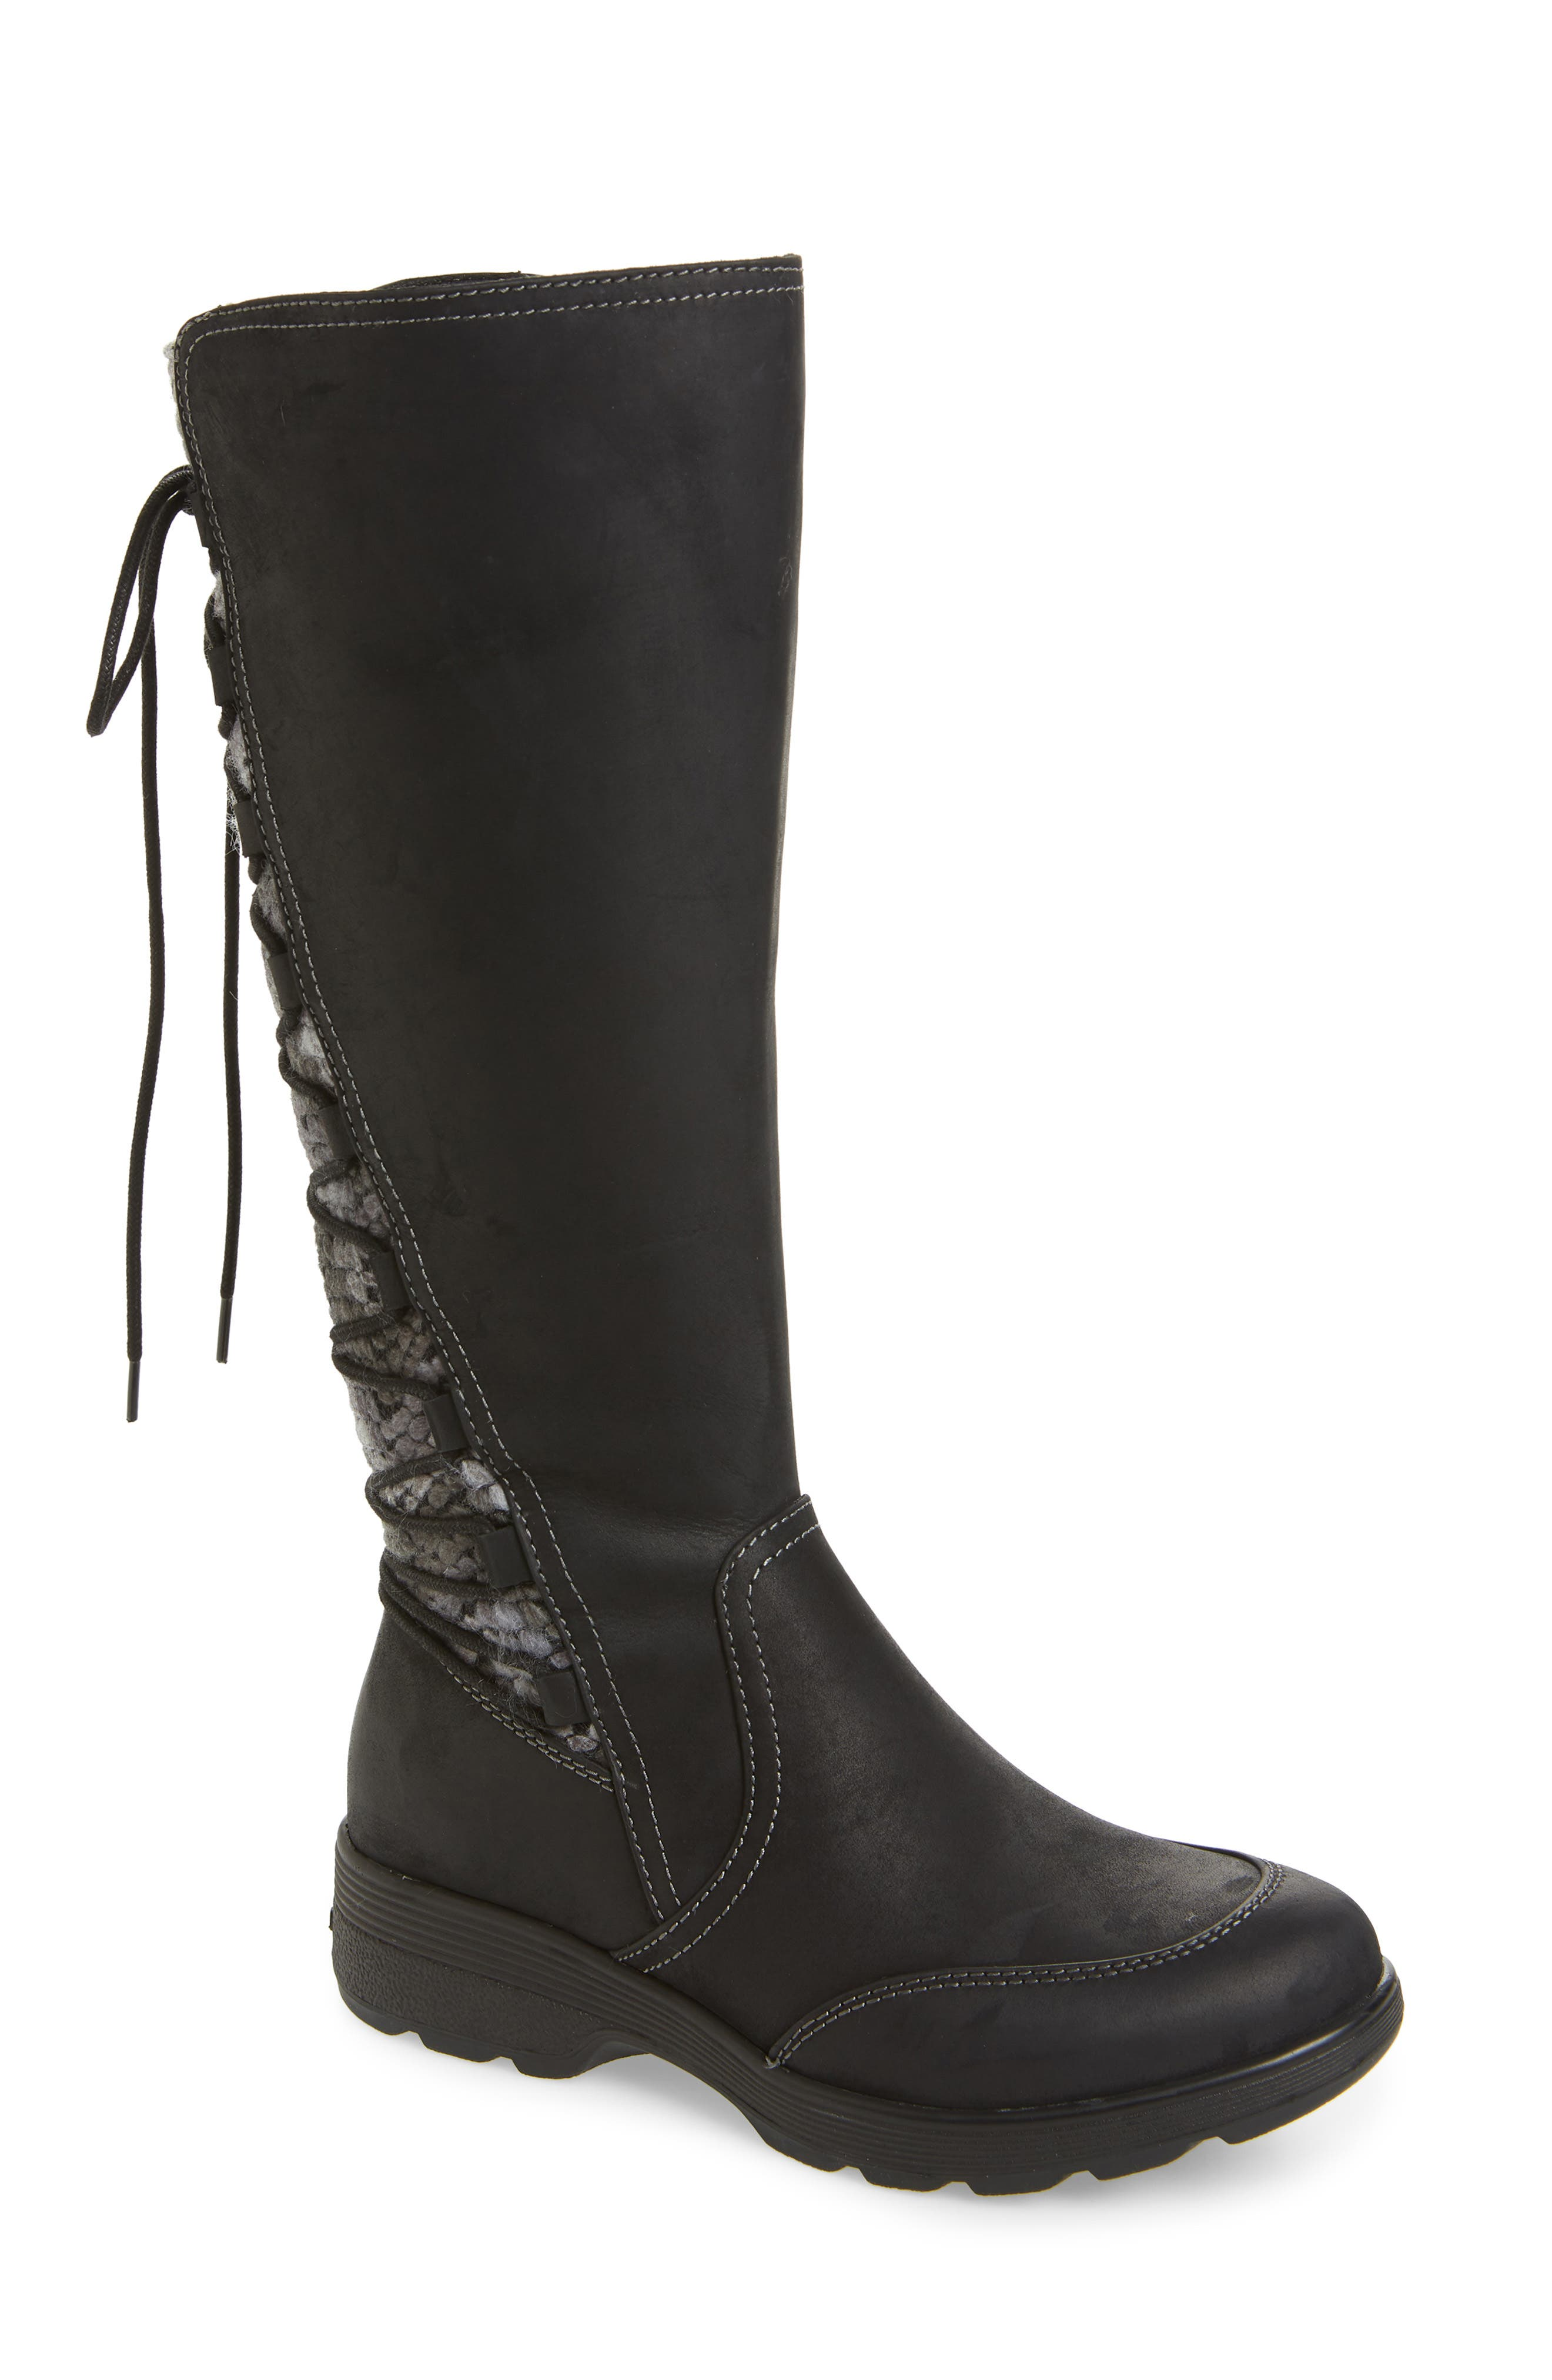 Epping Waterproof Knee High Boot,                             Main thumbnail 1, color,                             BLACK LEATHER